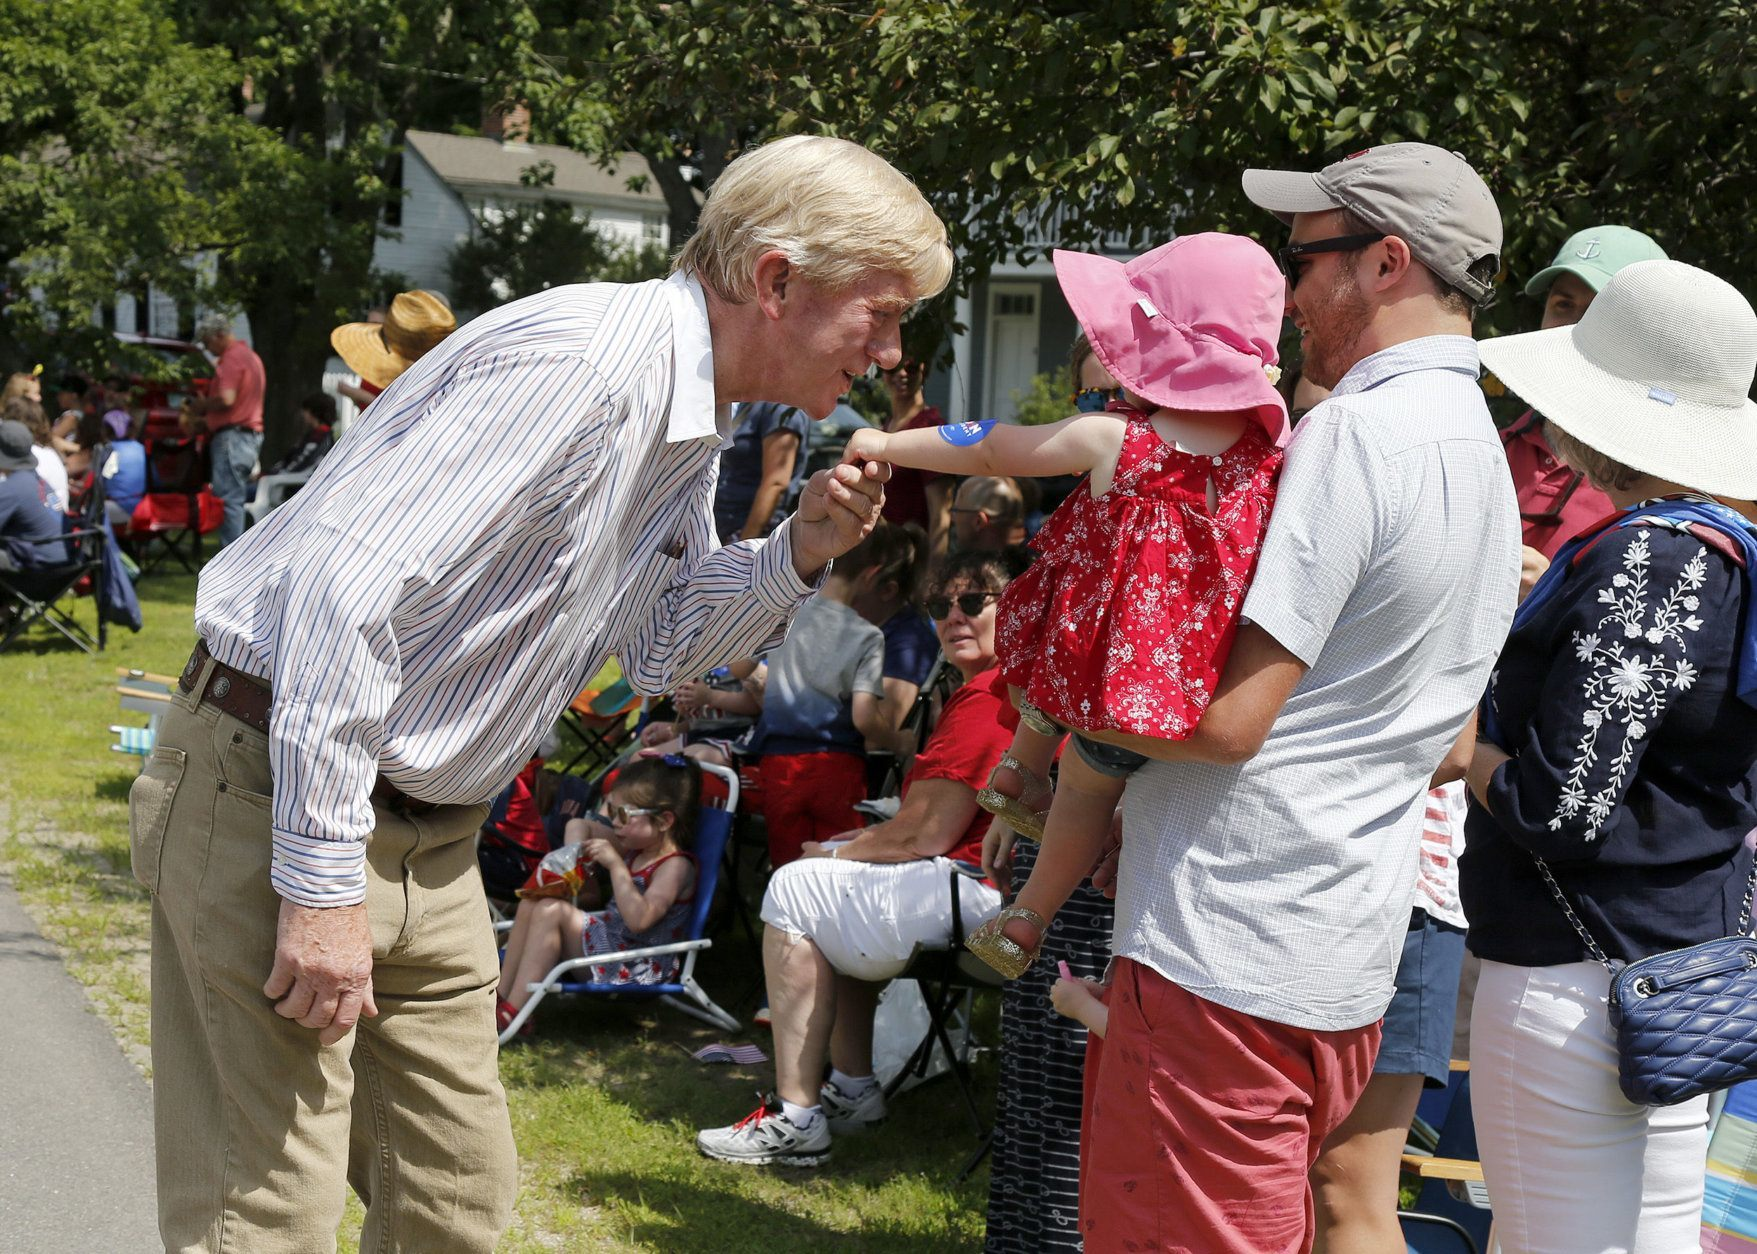 Republican presidential candidate former Massachusetts Gov. William Weld leans in to kiss the hand of Abigail Smith, 2, of Concord, Mass., along the route during the Fourth of July Parade, Thursday, July 4, 2019, in Amherst. (AP Photo/Mary Schwalm)